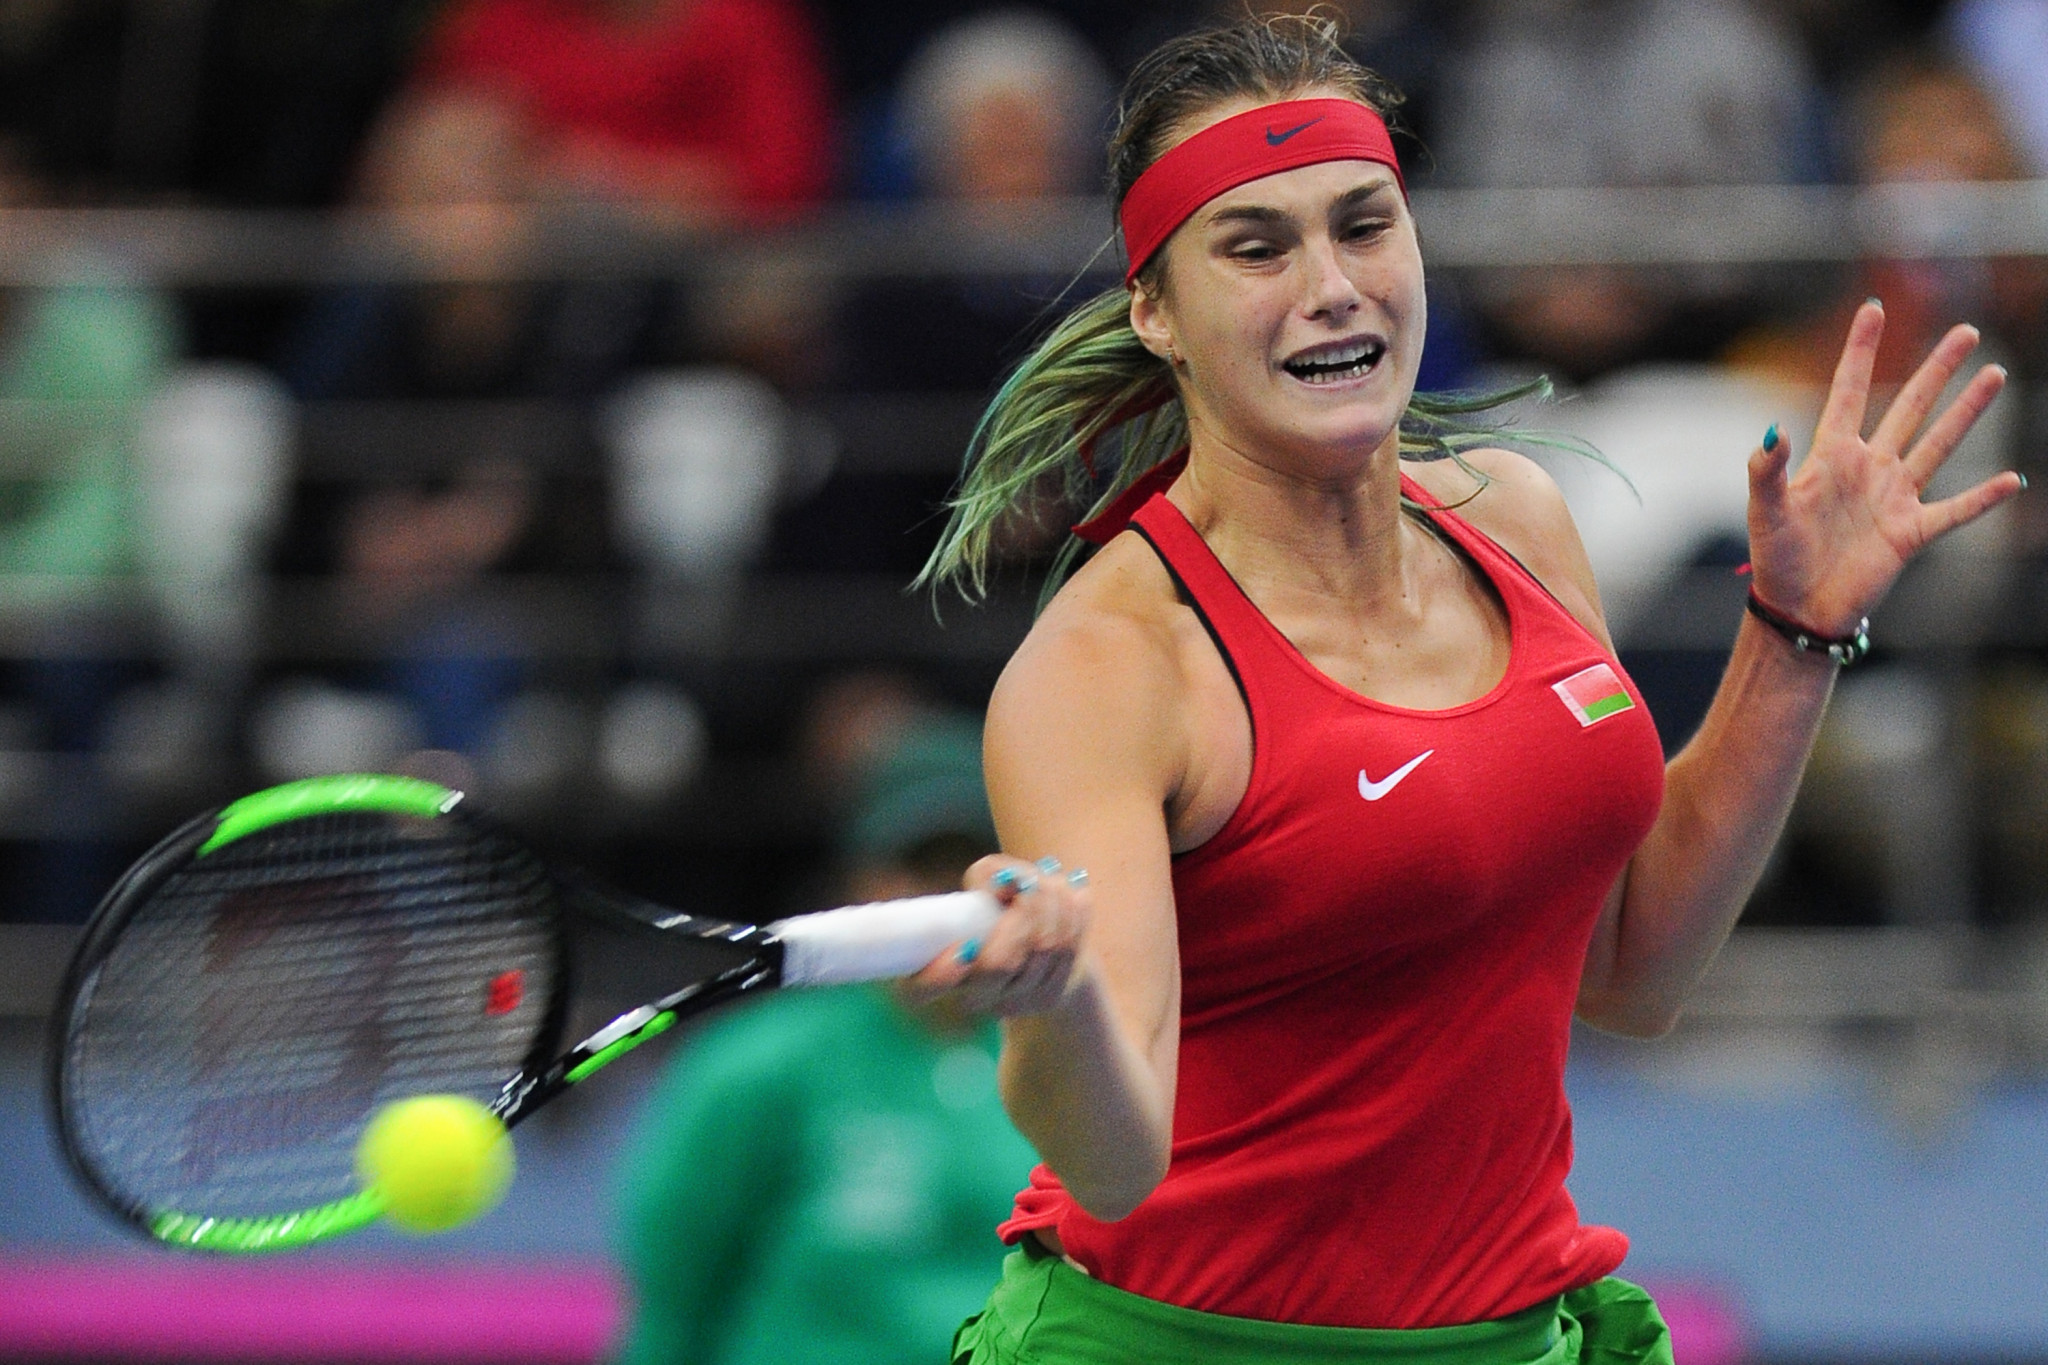 Belarus and United States tied after opening day of Fed Cup final